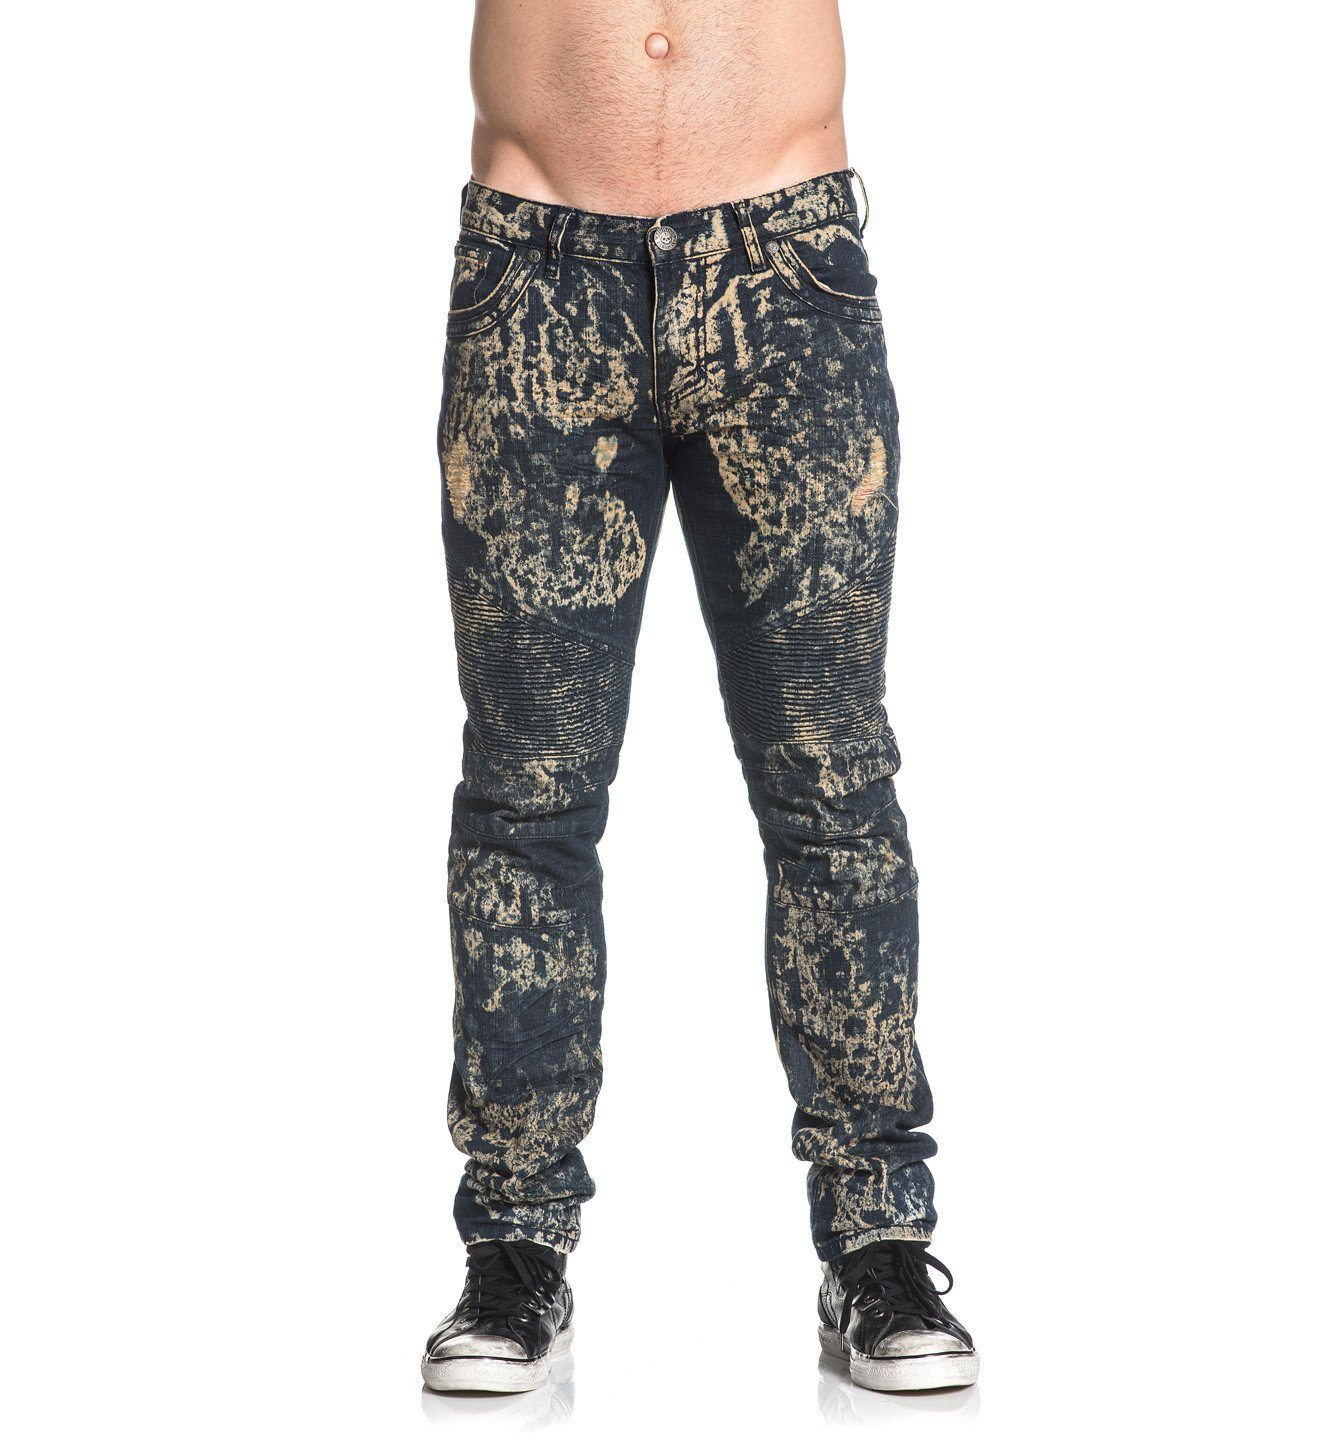 Gage Standard Denmark - Mens Denim Bottoms - Affliction Clothing